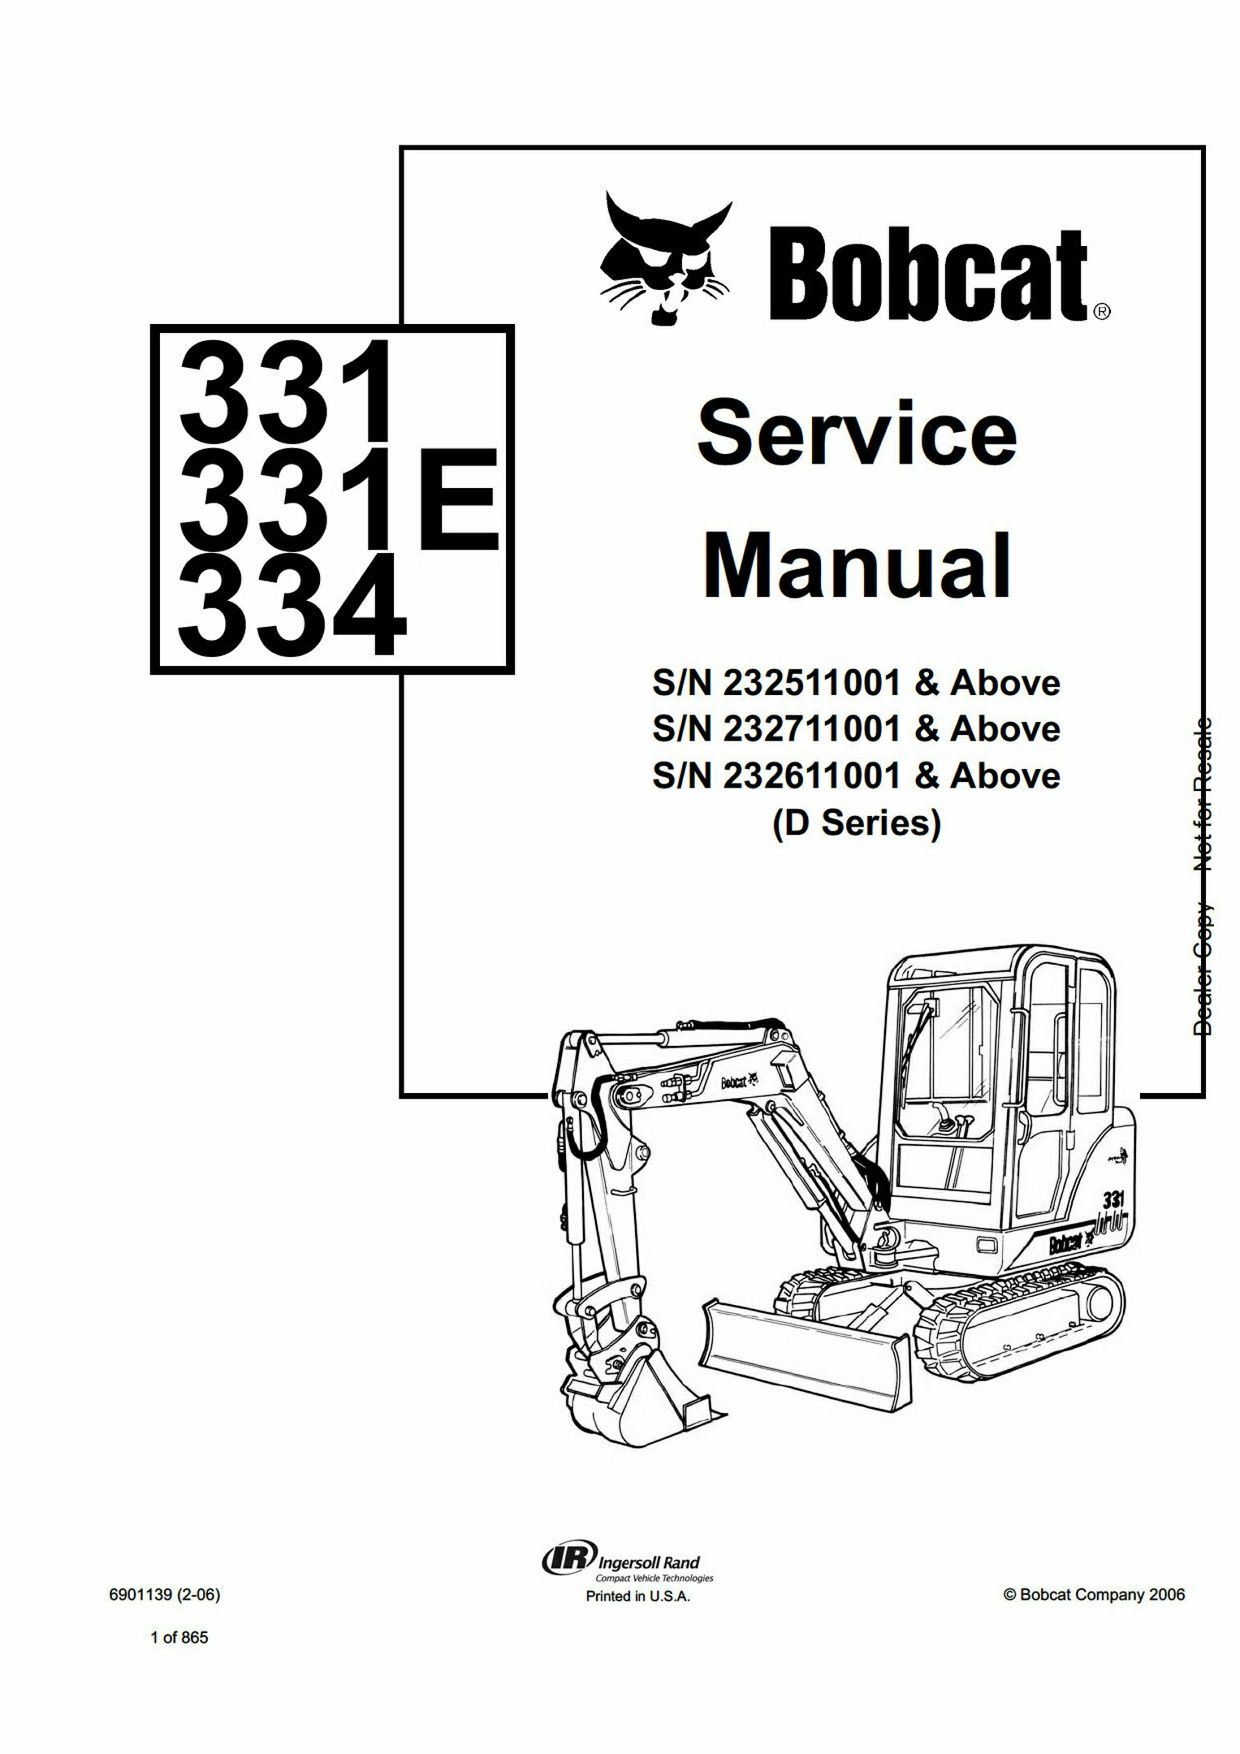 pdf bobcat 331 331e 334 compact excavator service manual sn 232611001 and above [ 1240 x 1754 Pixel ]